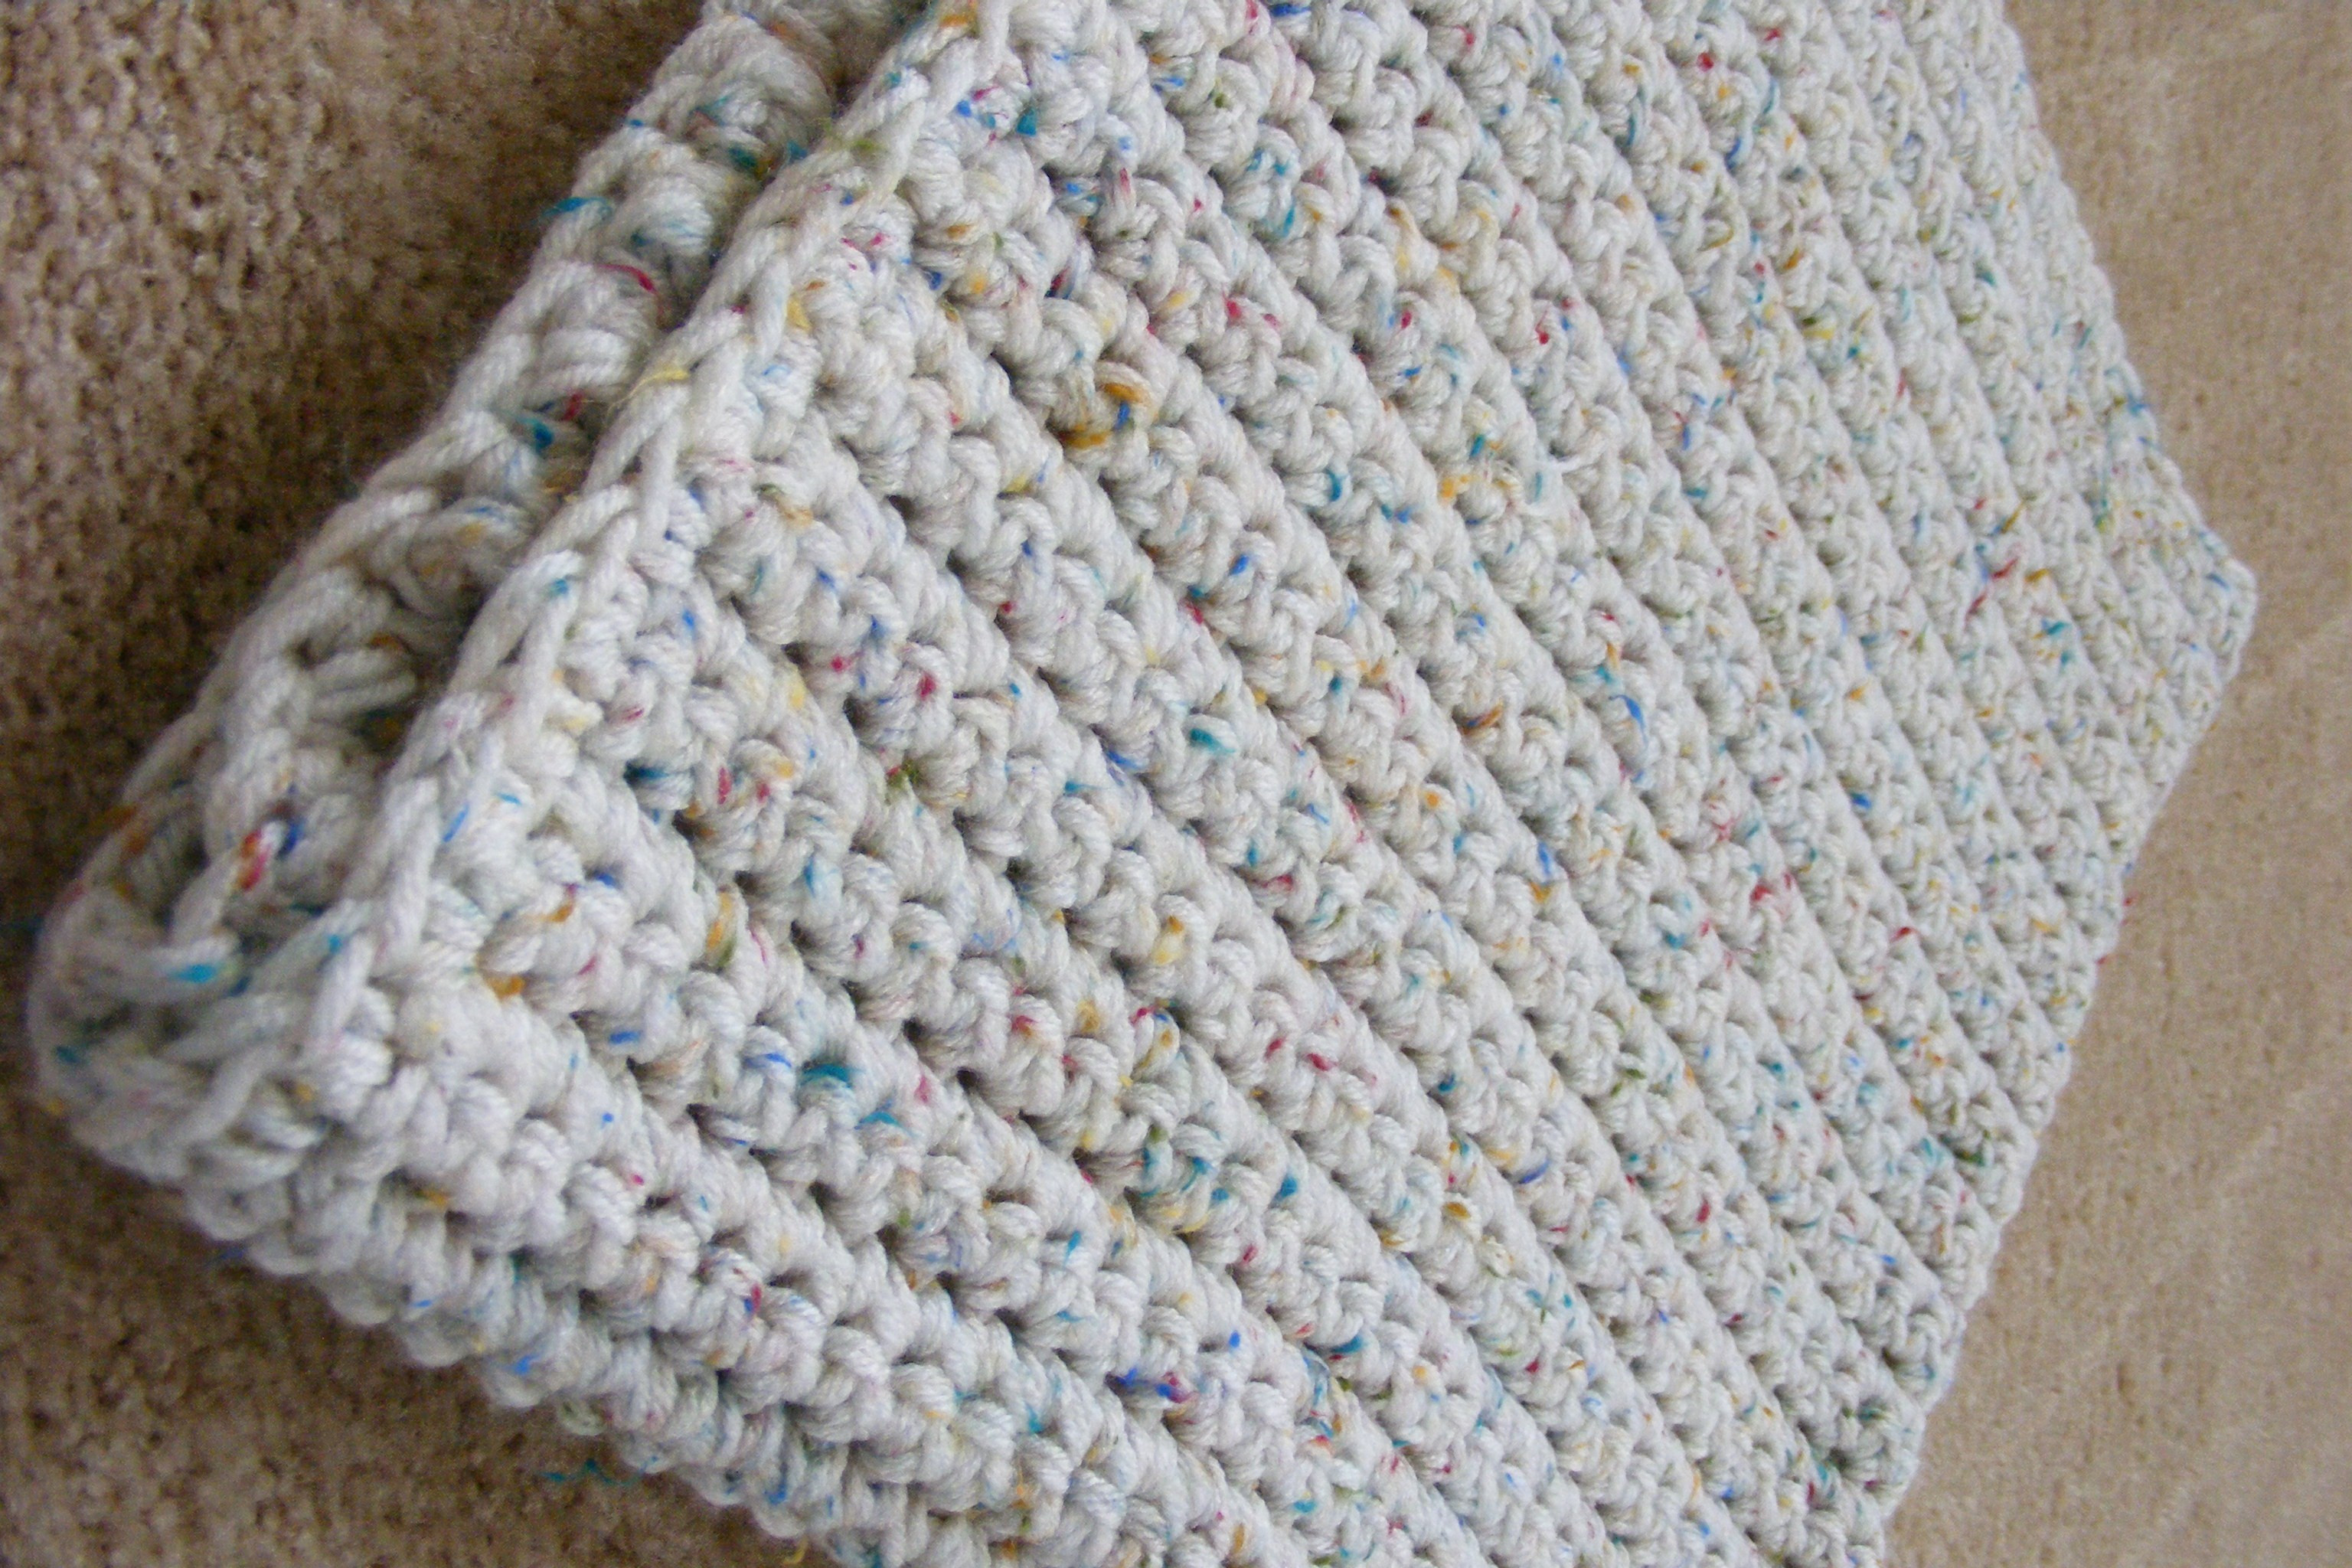 Knitting A Baby Blanket for Beginners Inspirational Baby Sweater Knitting Pattern Easy Bronze Cardigan Of Marvelous 48 Ideas Knitting A Baby Blanket for Beginners